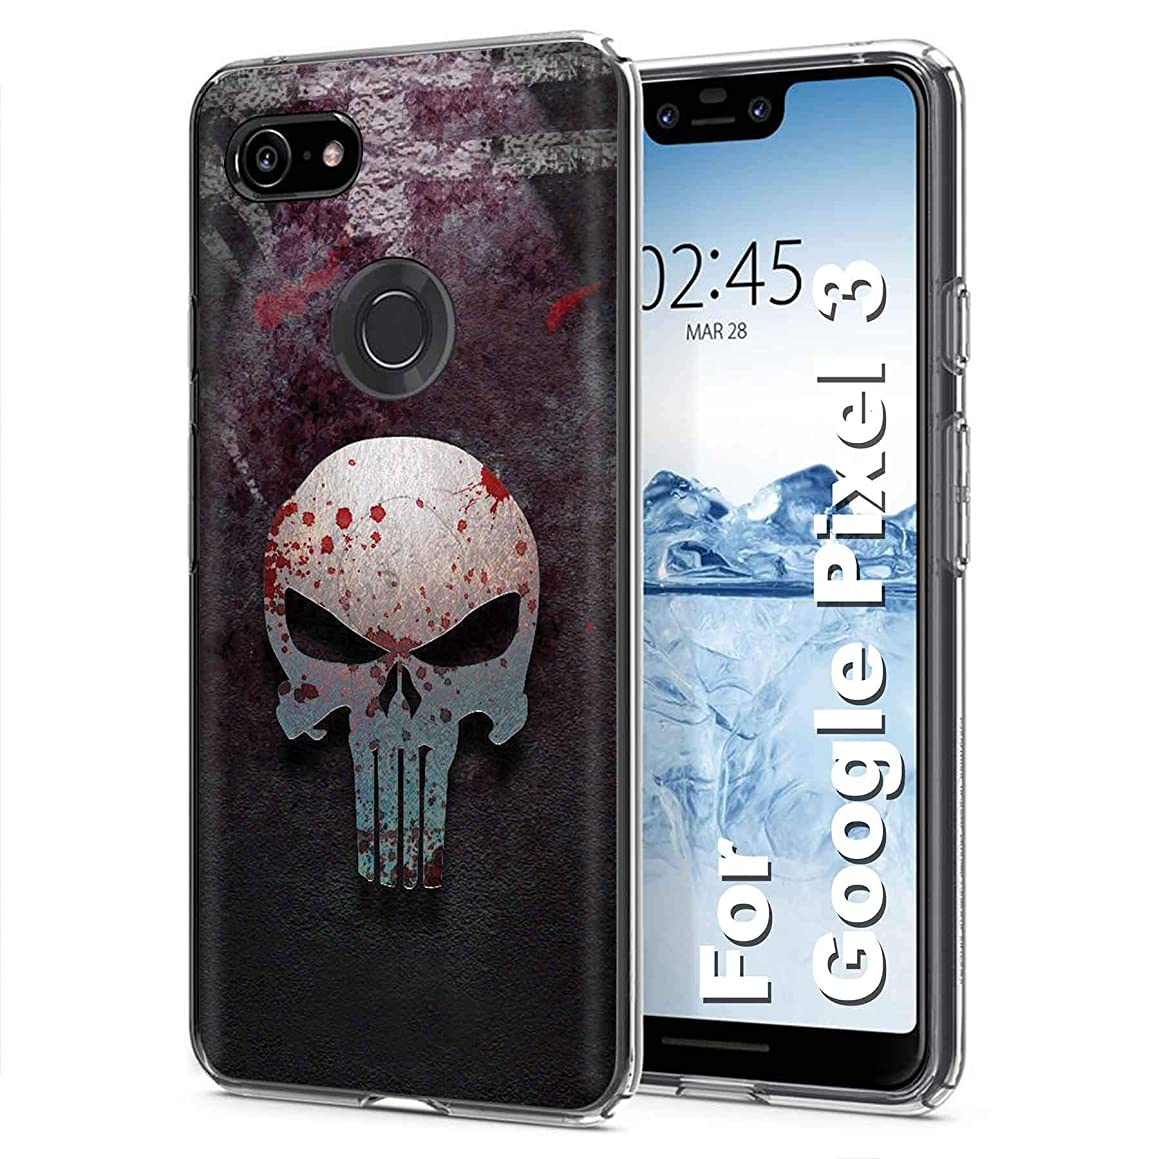 [PlusBrite] Google [Pixel 3] [Clear] Flex Defender Soft Slim Phone Cover Case Feature Ultra-Thin, Soft to Touch TPU Case for Pixel3,Pixel 3 [Punisher Print] Design in USA